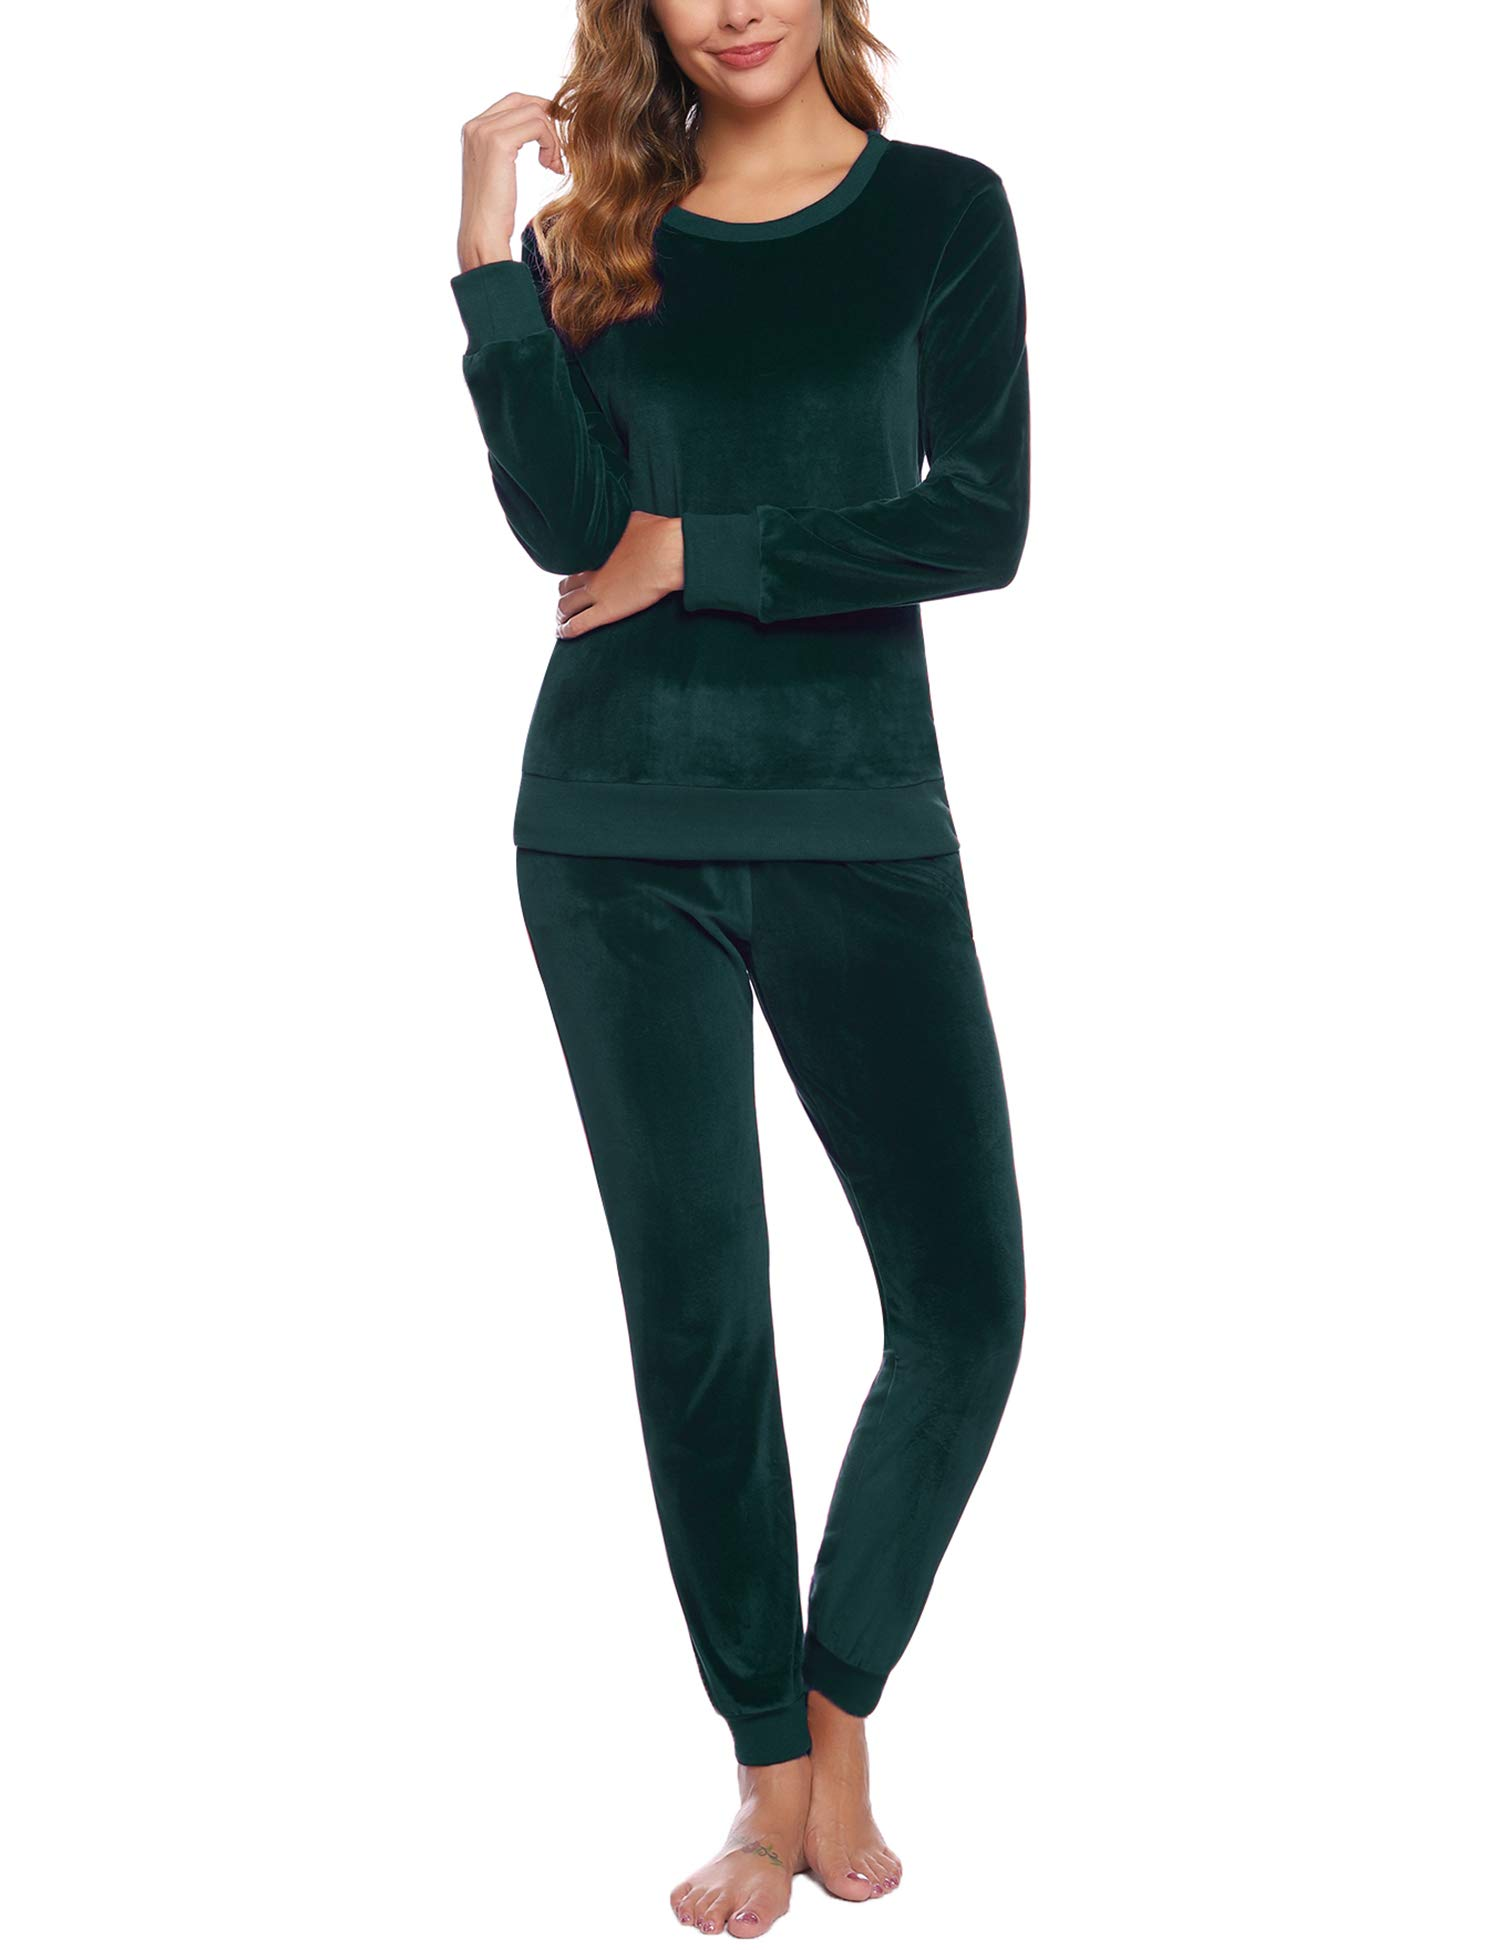 Abollria Women's Solid Velour Sweatsuit Set Sport Suits Tracksuits Deep Green by Abollria